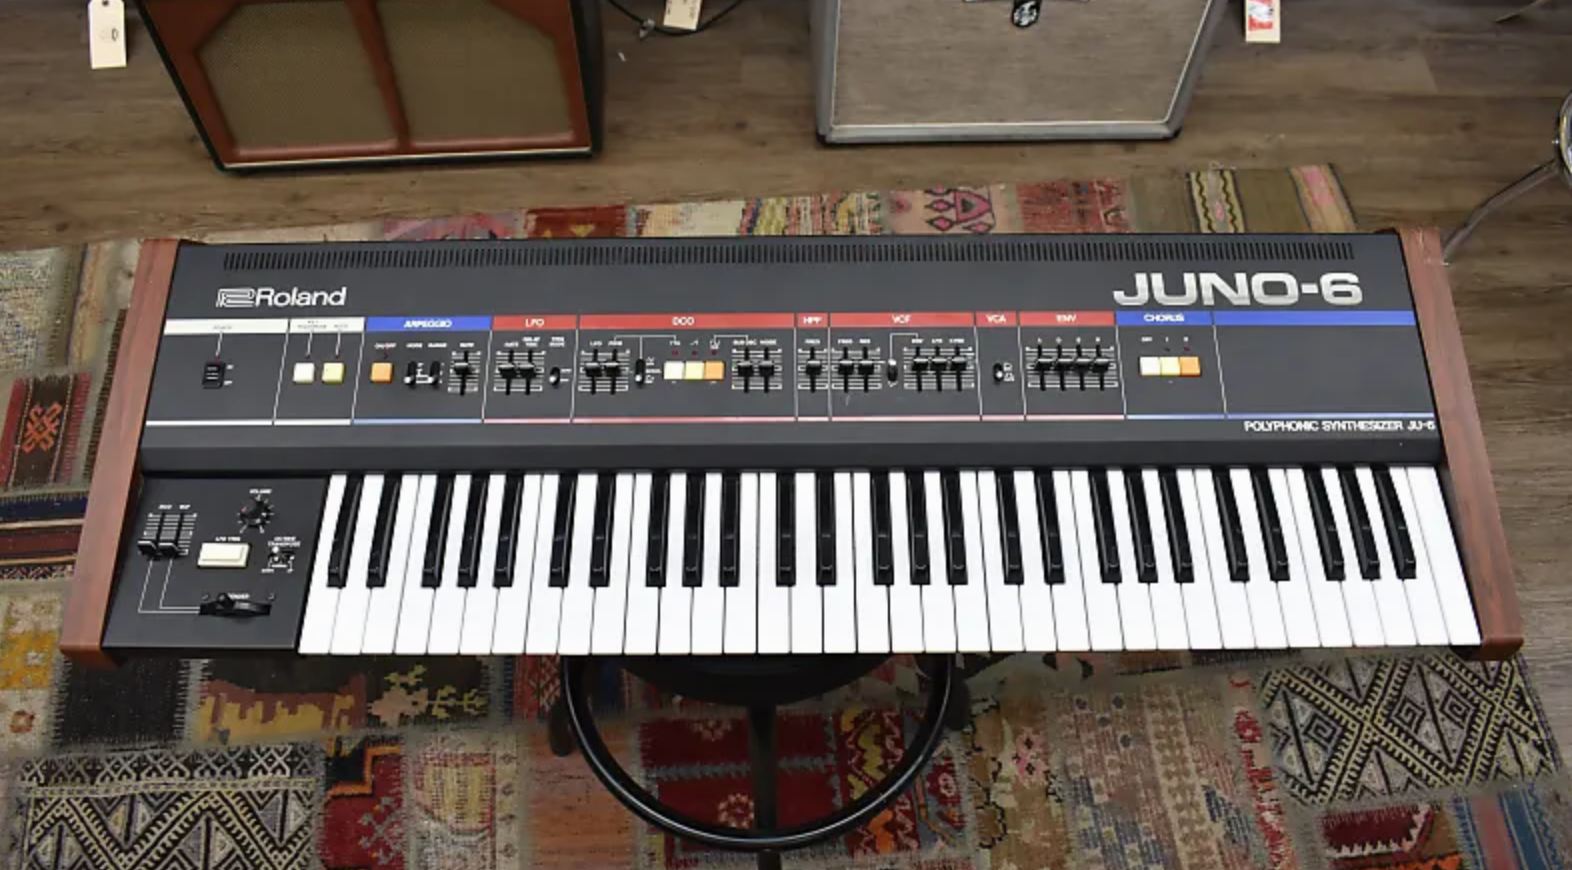 Roland Juno 6, photo by Reverb